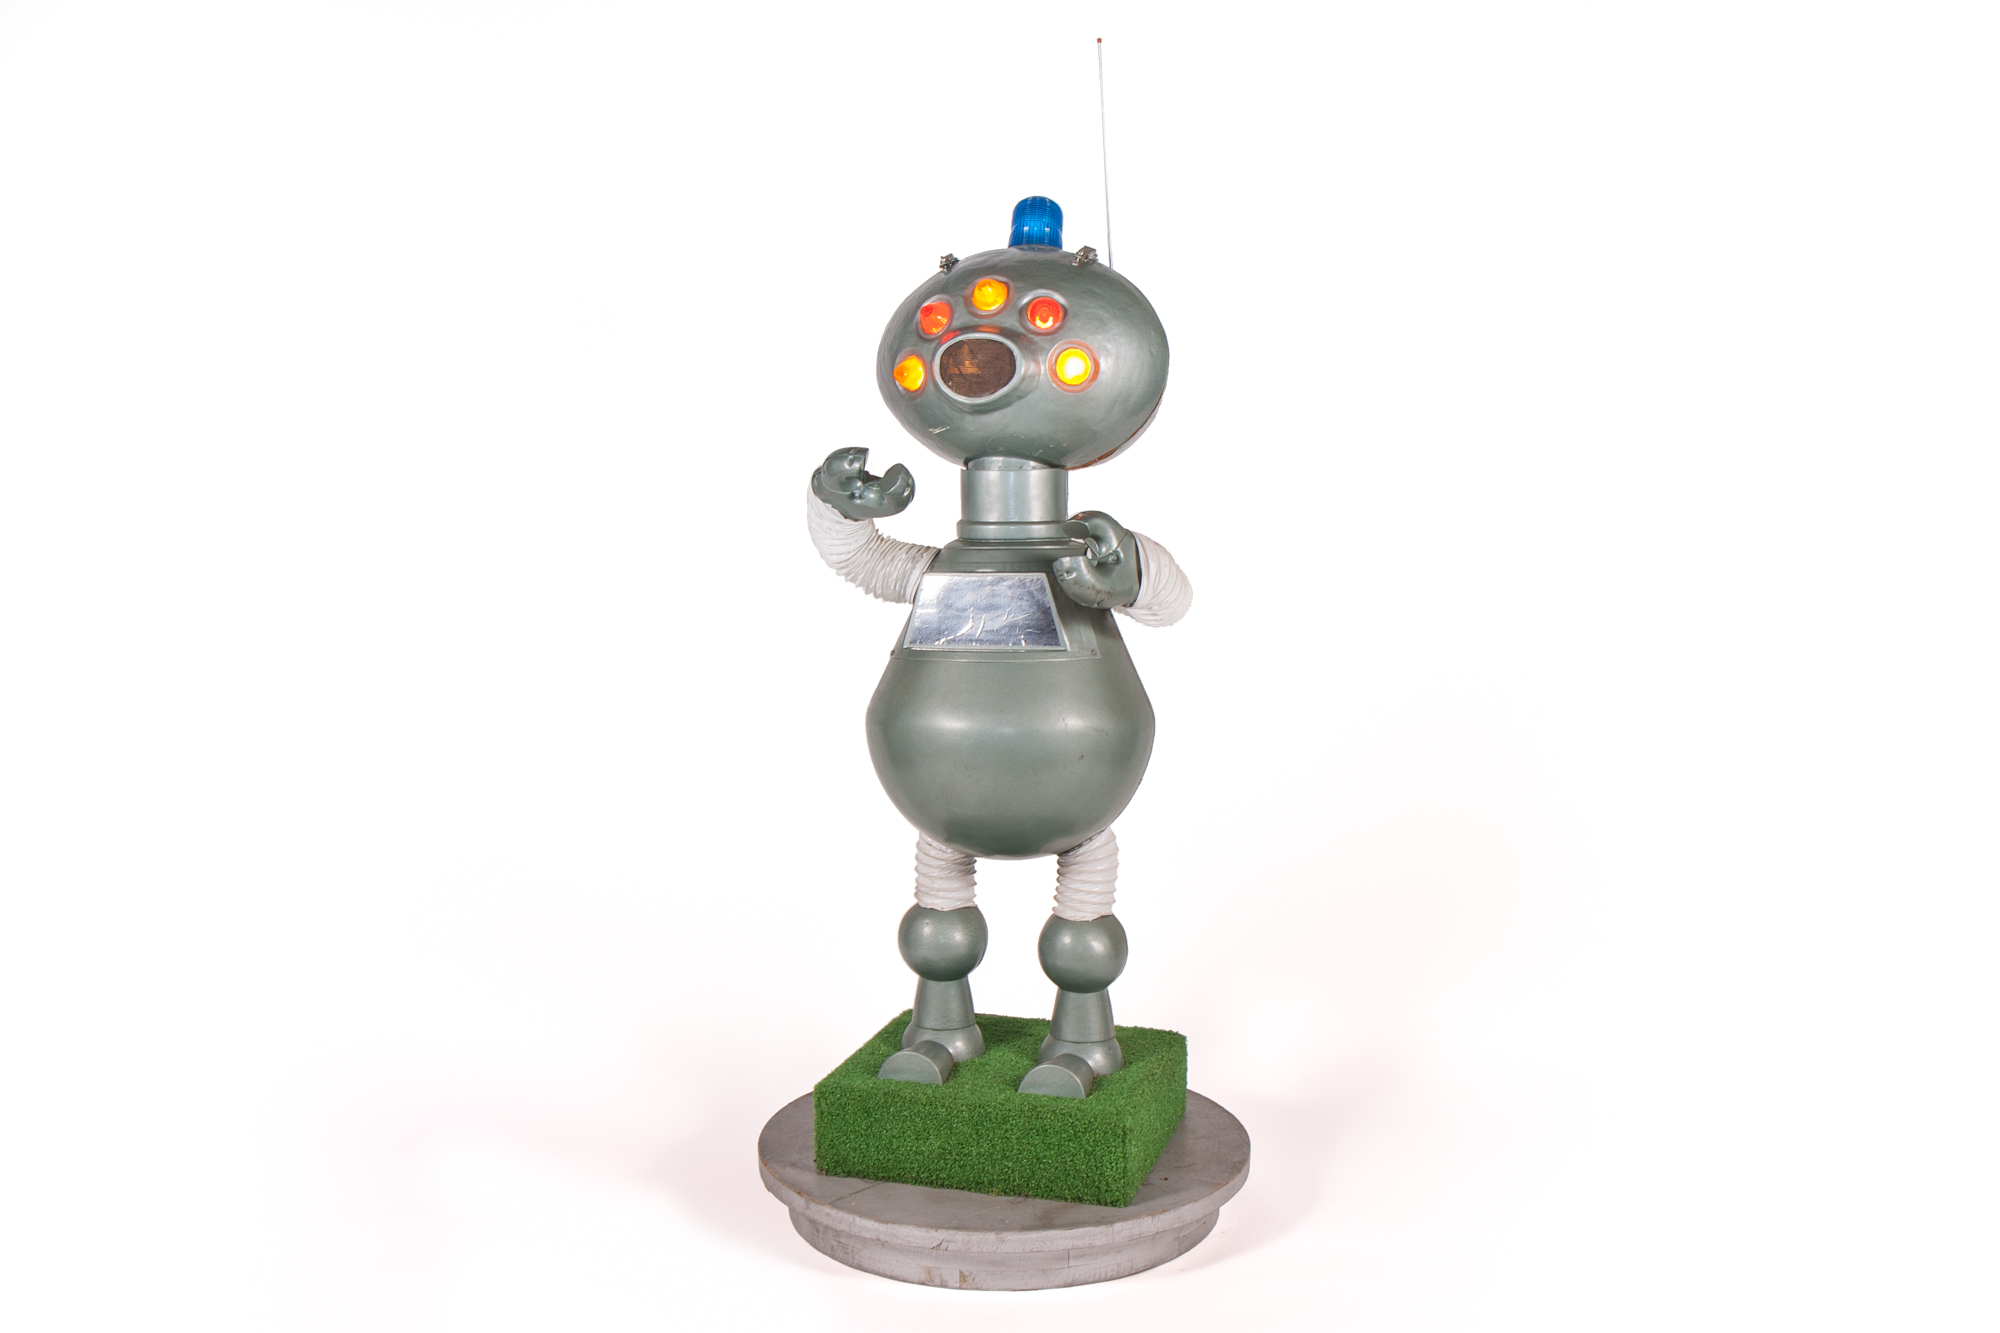 Promotional Display Robot – Molded Plastic (American circa 1970) - Height 5'1""